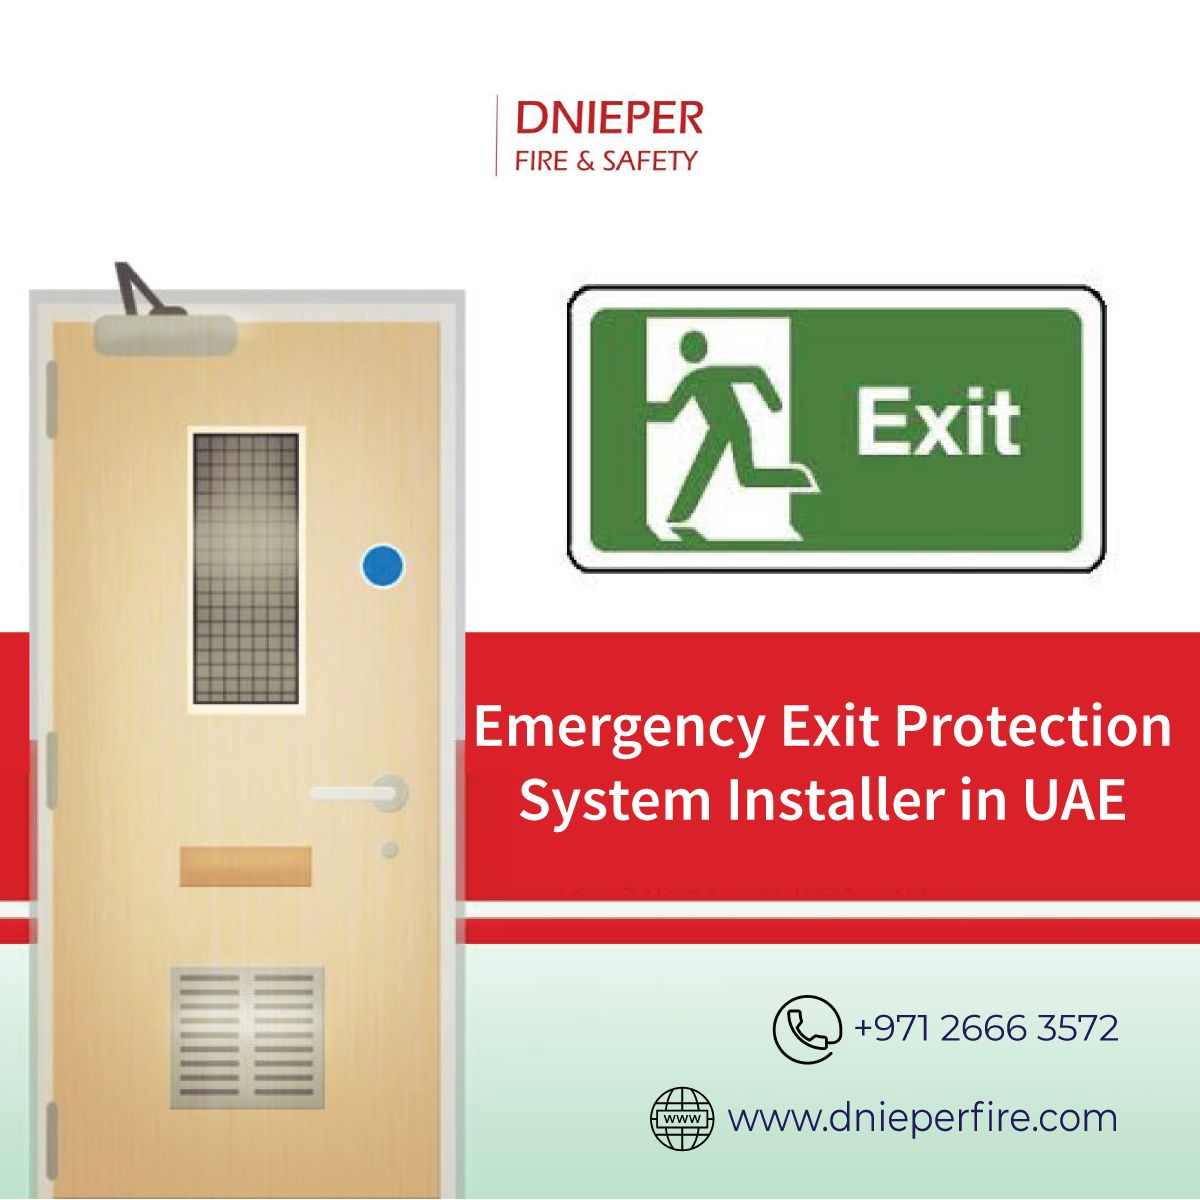 Dnieper Fire & Safety is an UAE based fire protection